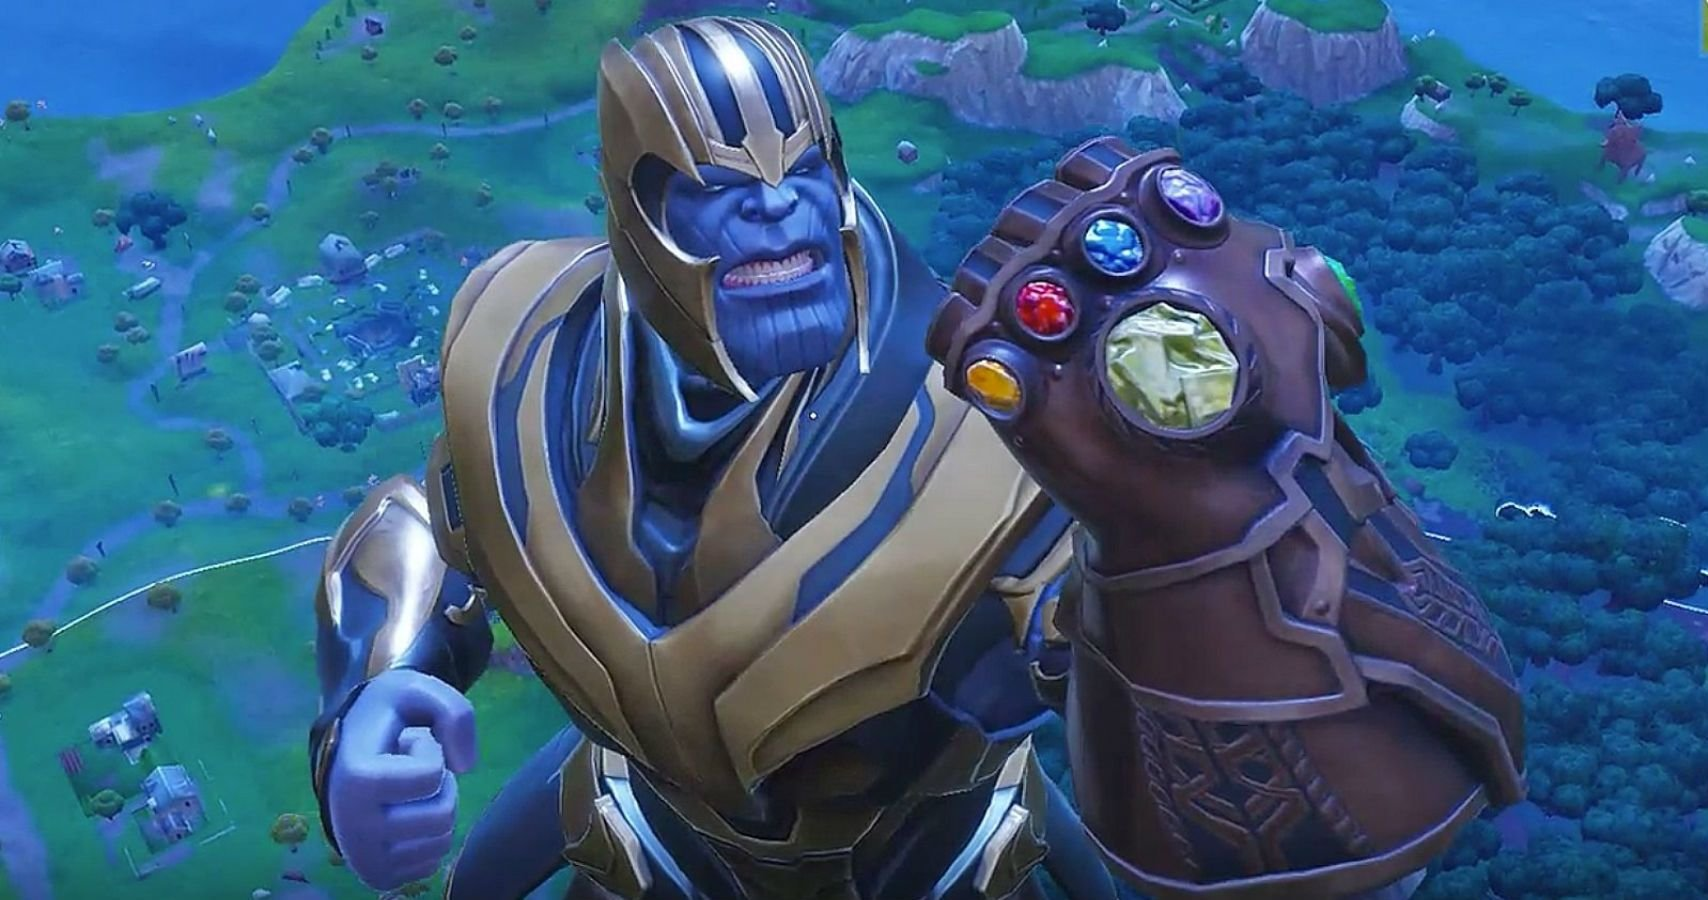 Josh Brolin Reacts To Thanos Dancing In Fortnite: 'I Don't Understand.'